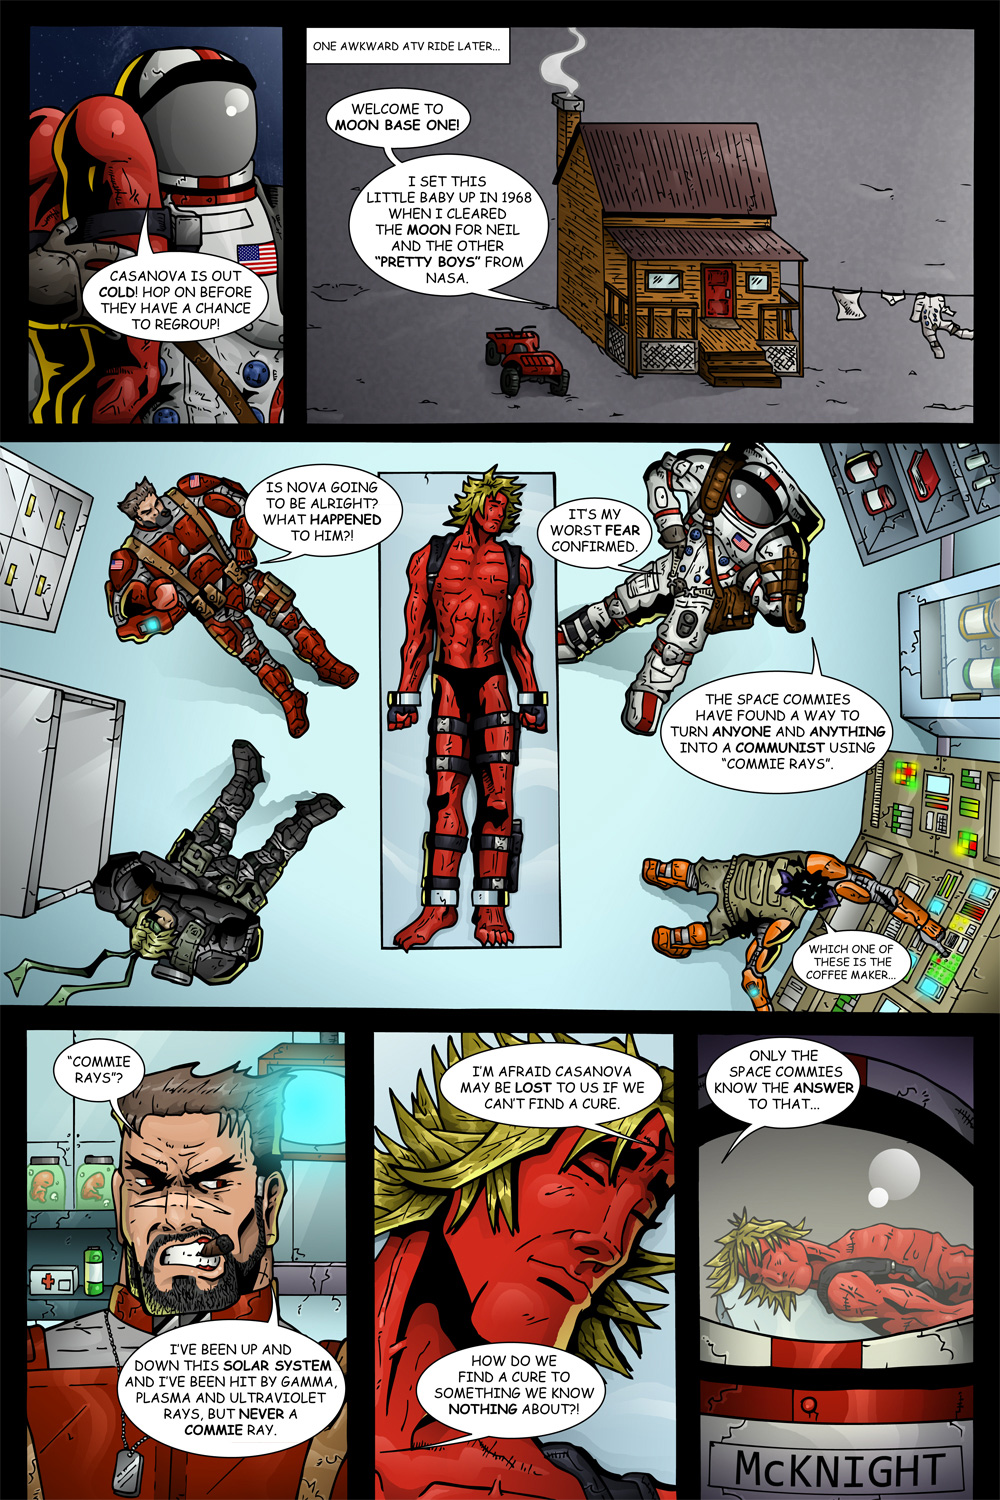 "MISSION 006: PAGE 15 ""AWKWARD ATV RIDE"""